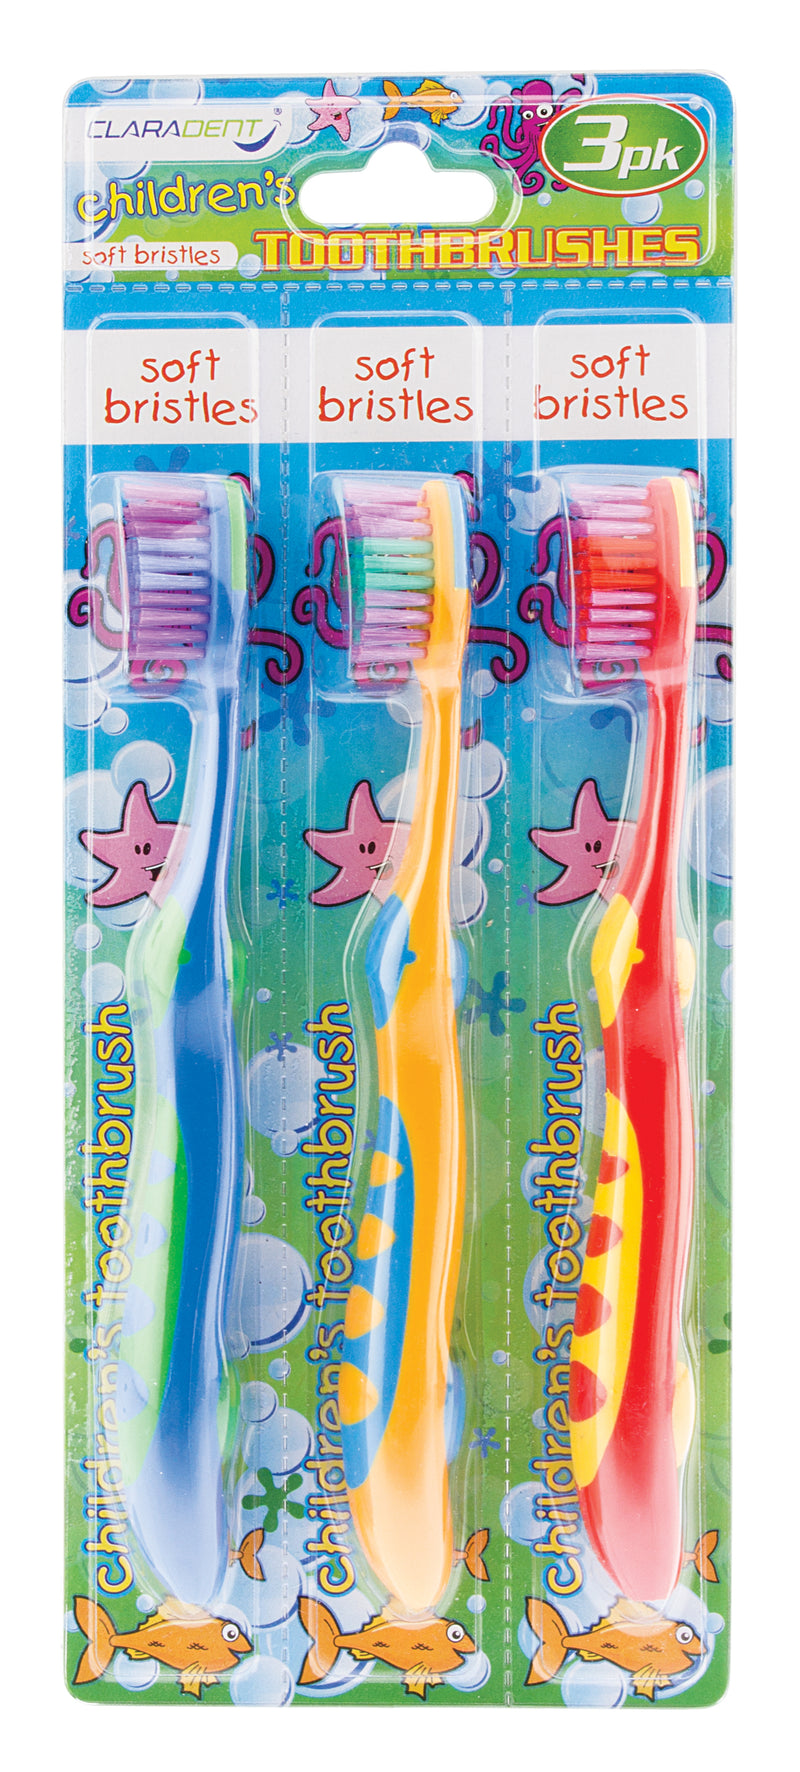 Children's Toothbrushes 3pk